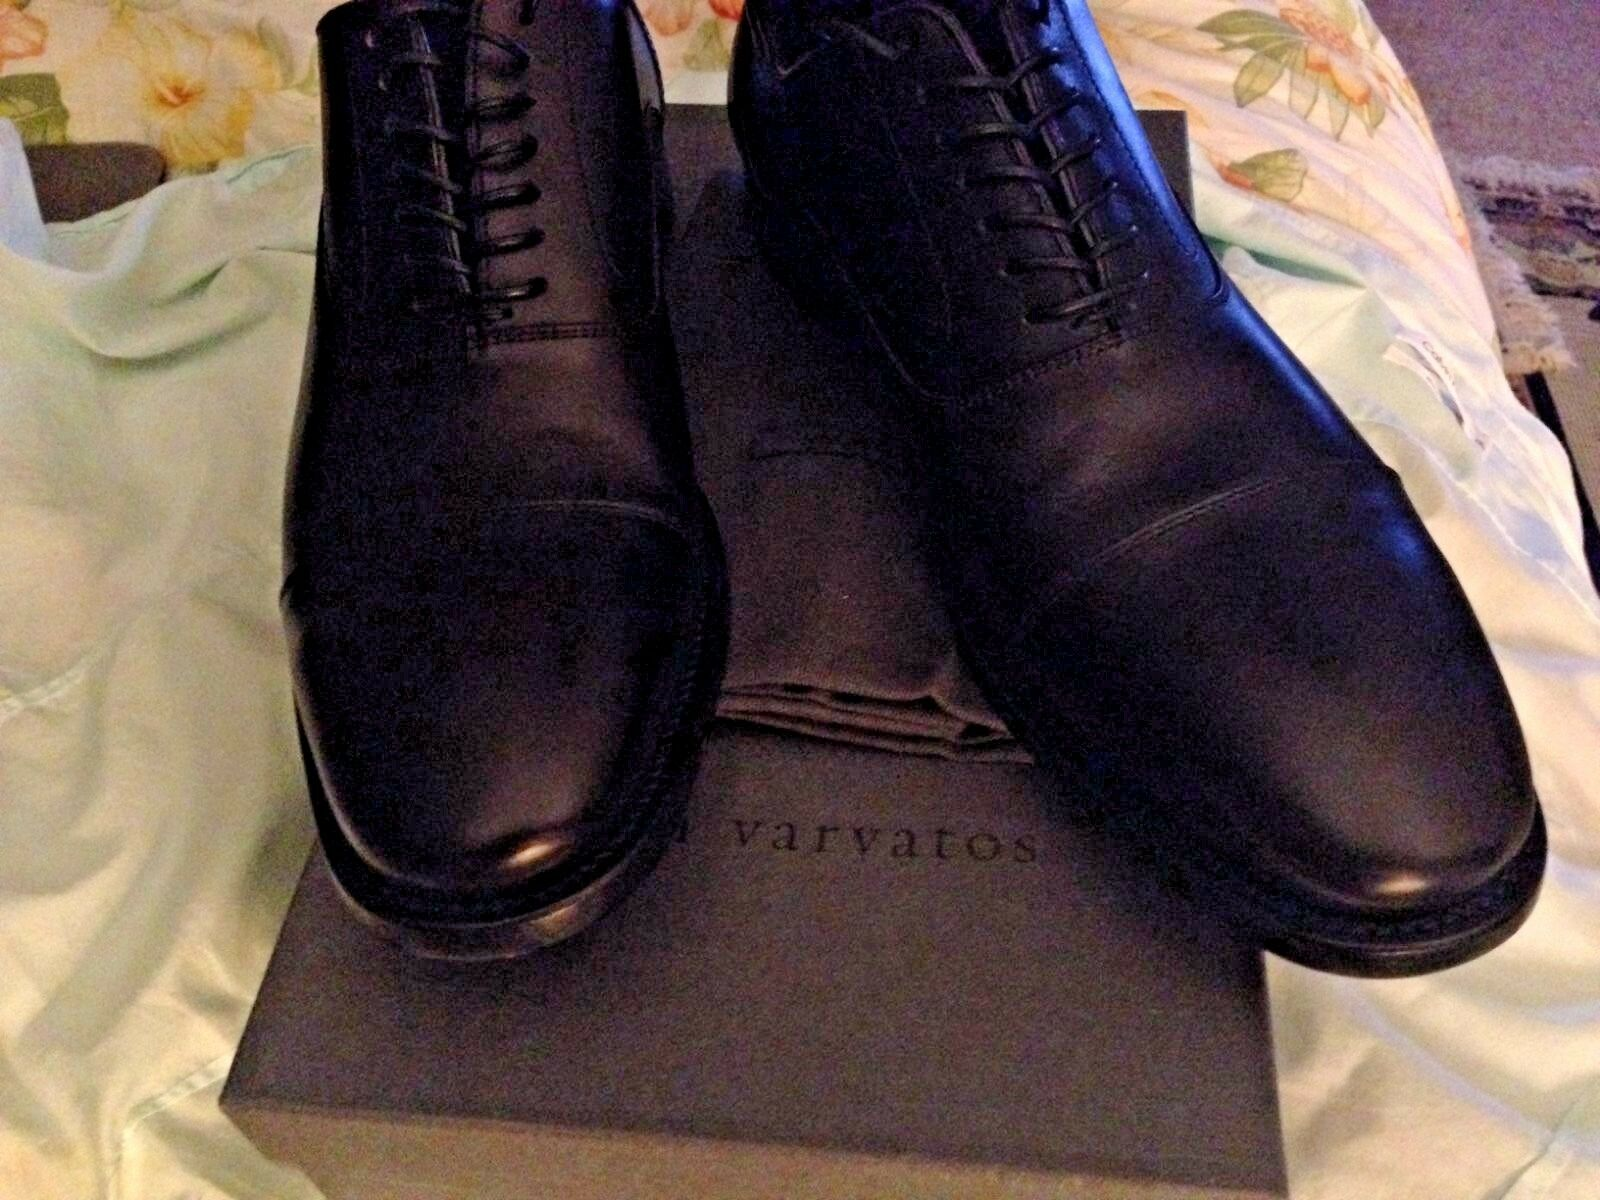 628.00 JOHN VARVATOS Leather Oxfords hand made in Italy size 11